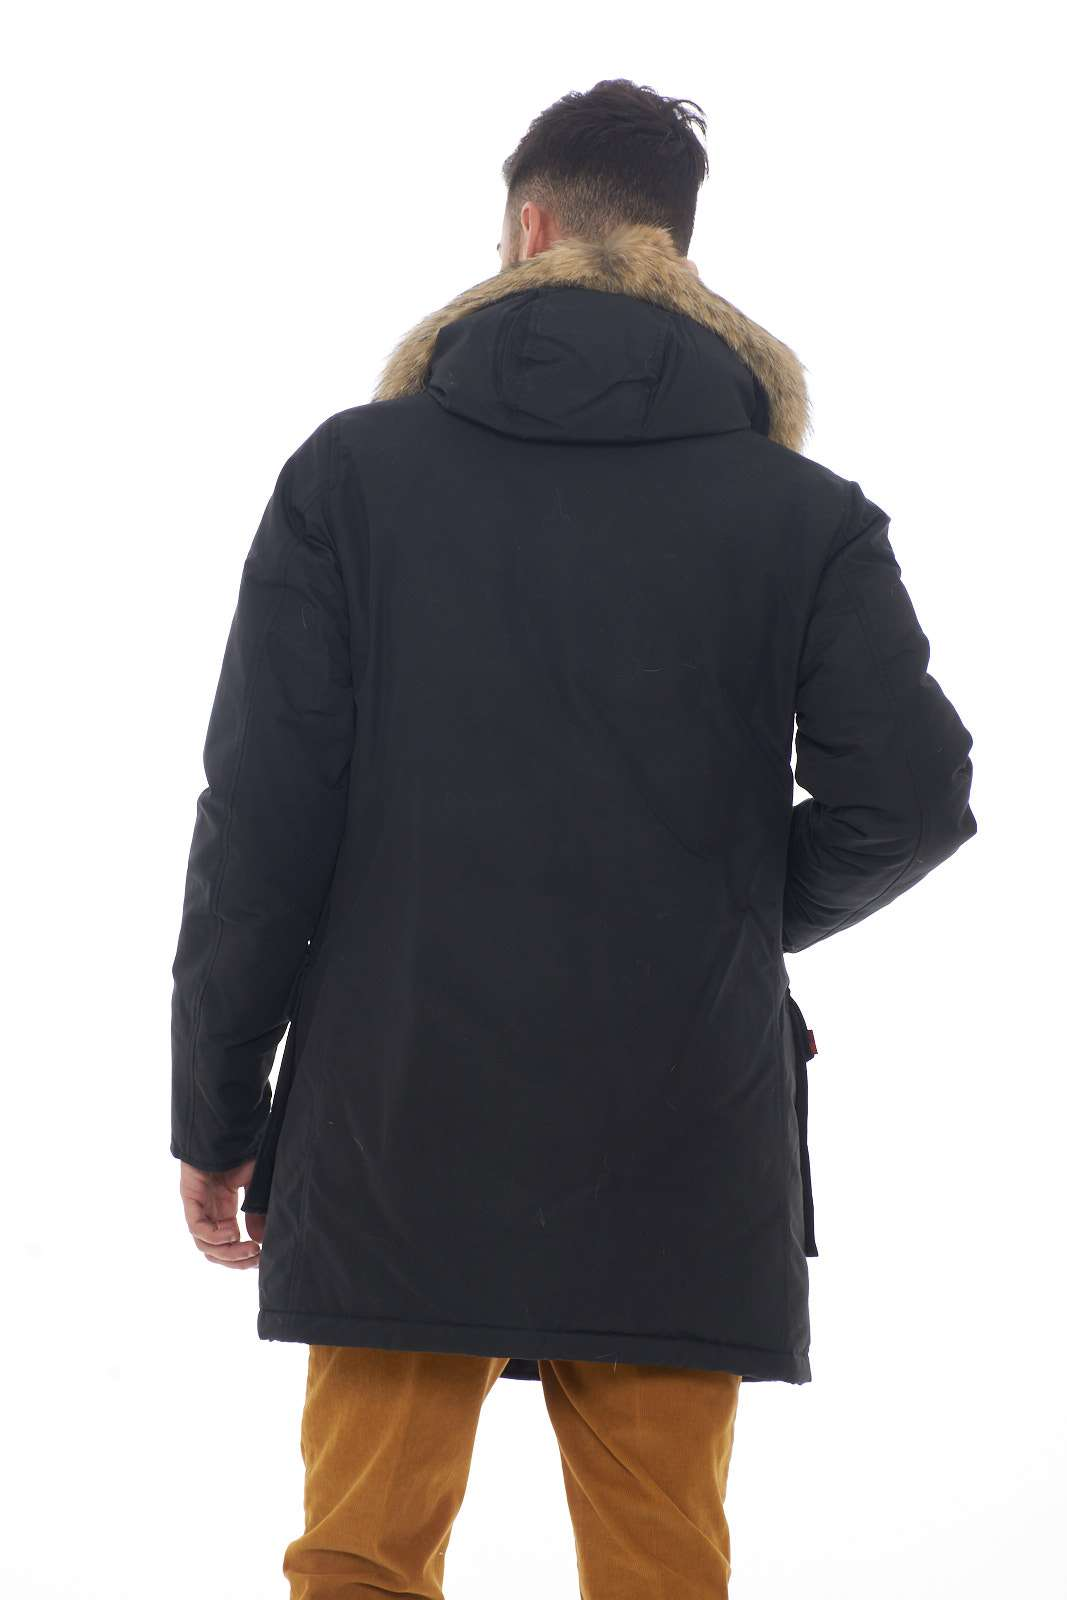 https://www.parmax.com/media/catalog/product/a/i/AI-outlet_parmax-parka-uomo-Woolrich-WOCPS2880-C.jpg